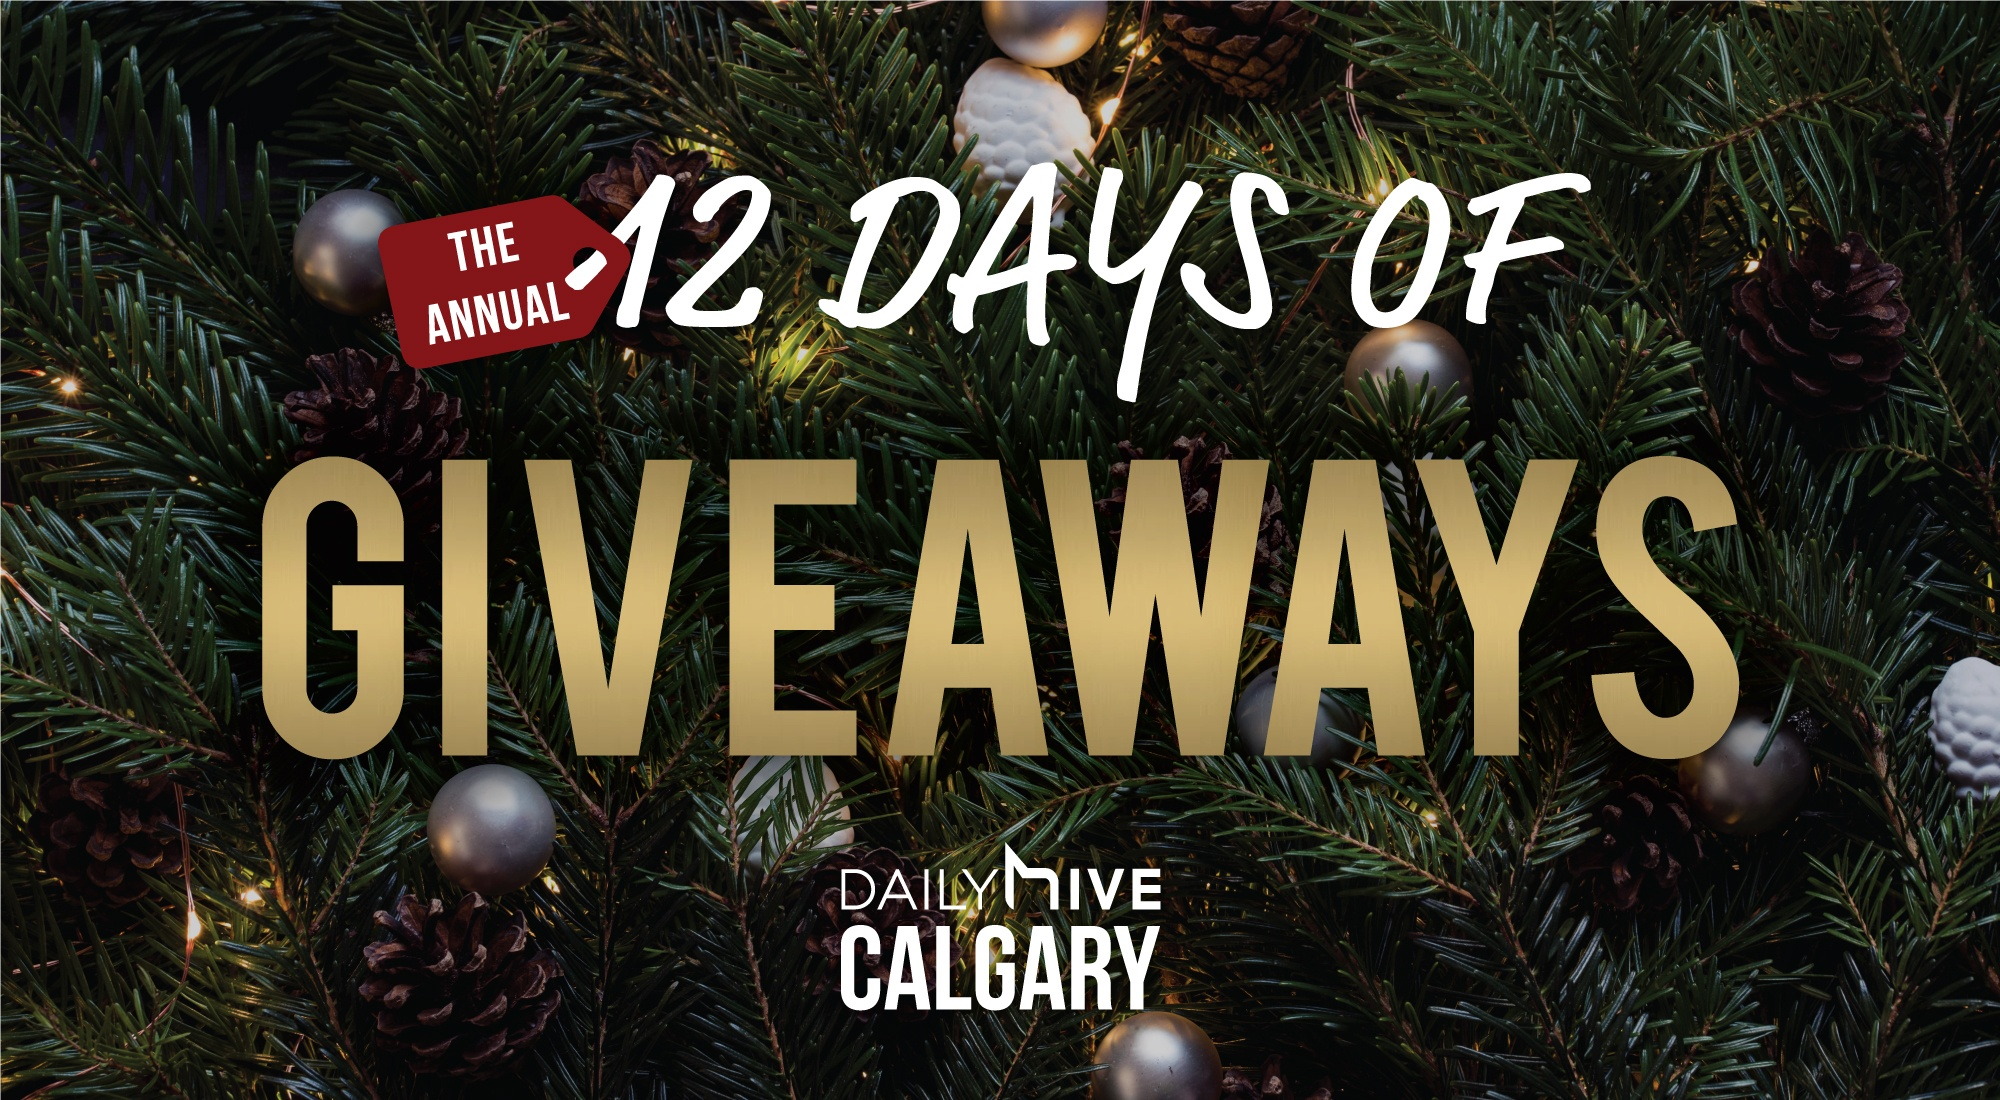 More than $32,000 in prizes in our second annual 12 Days of Giveaways